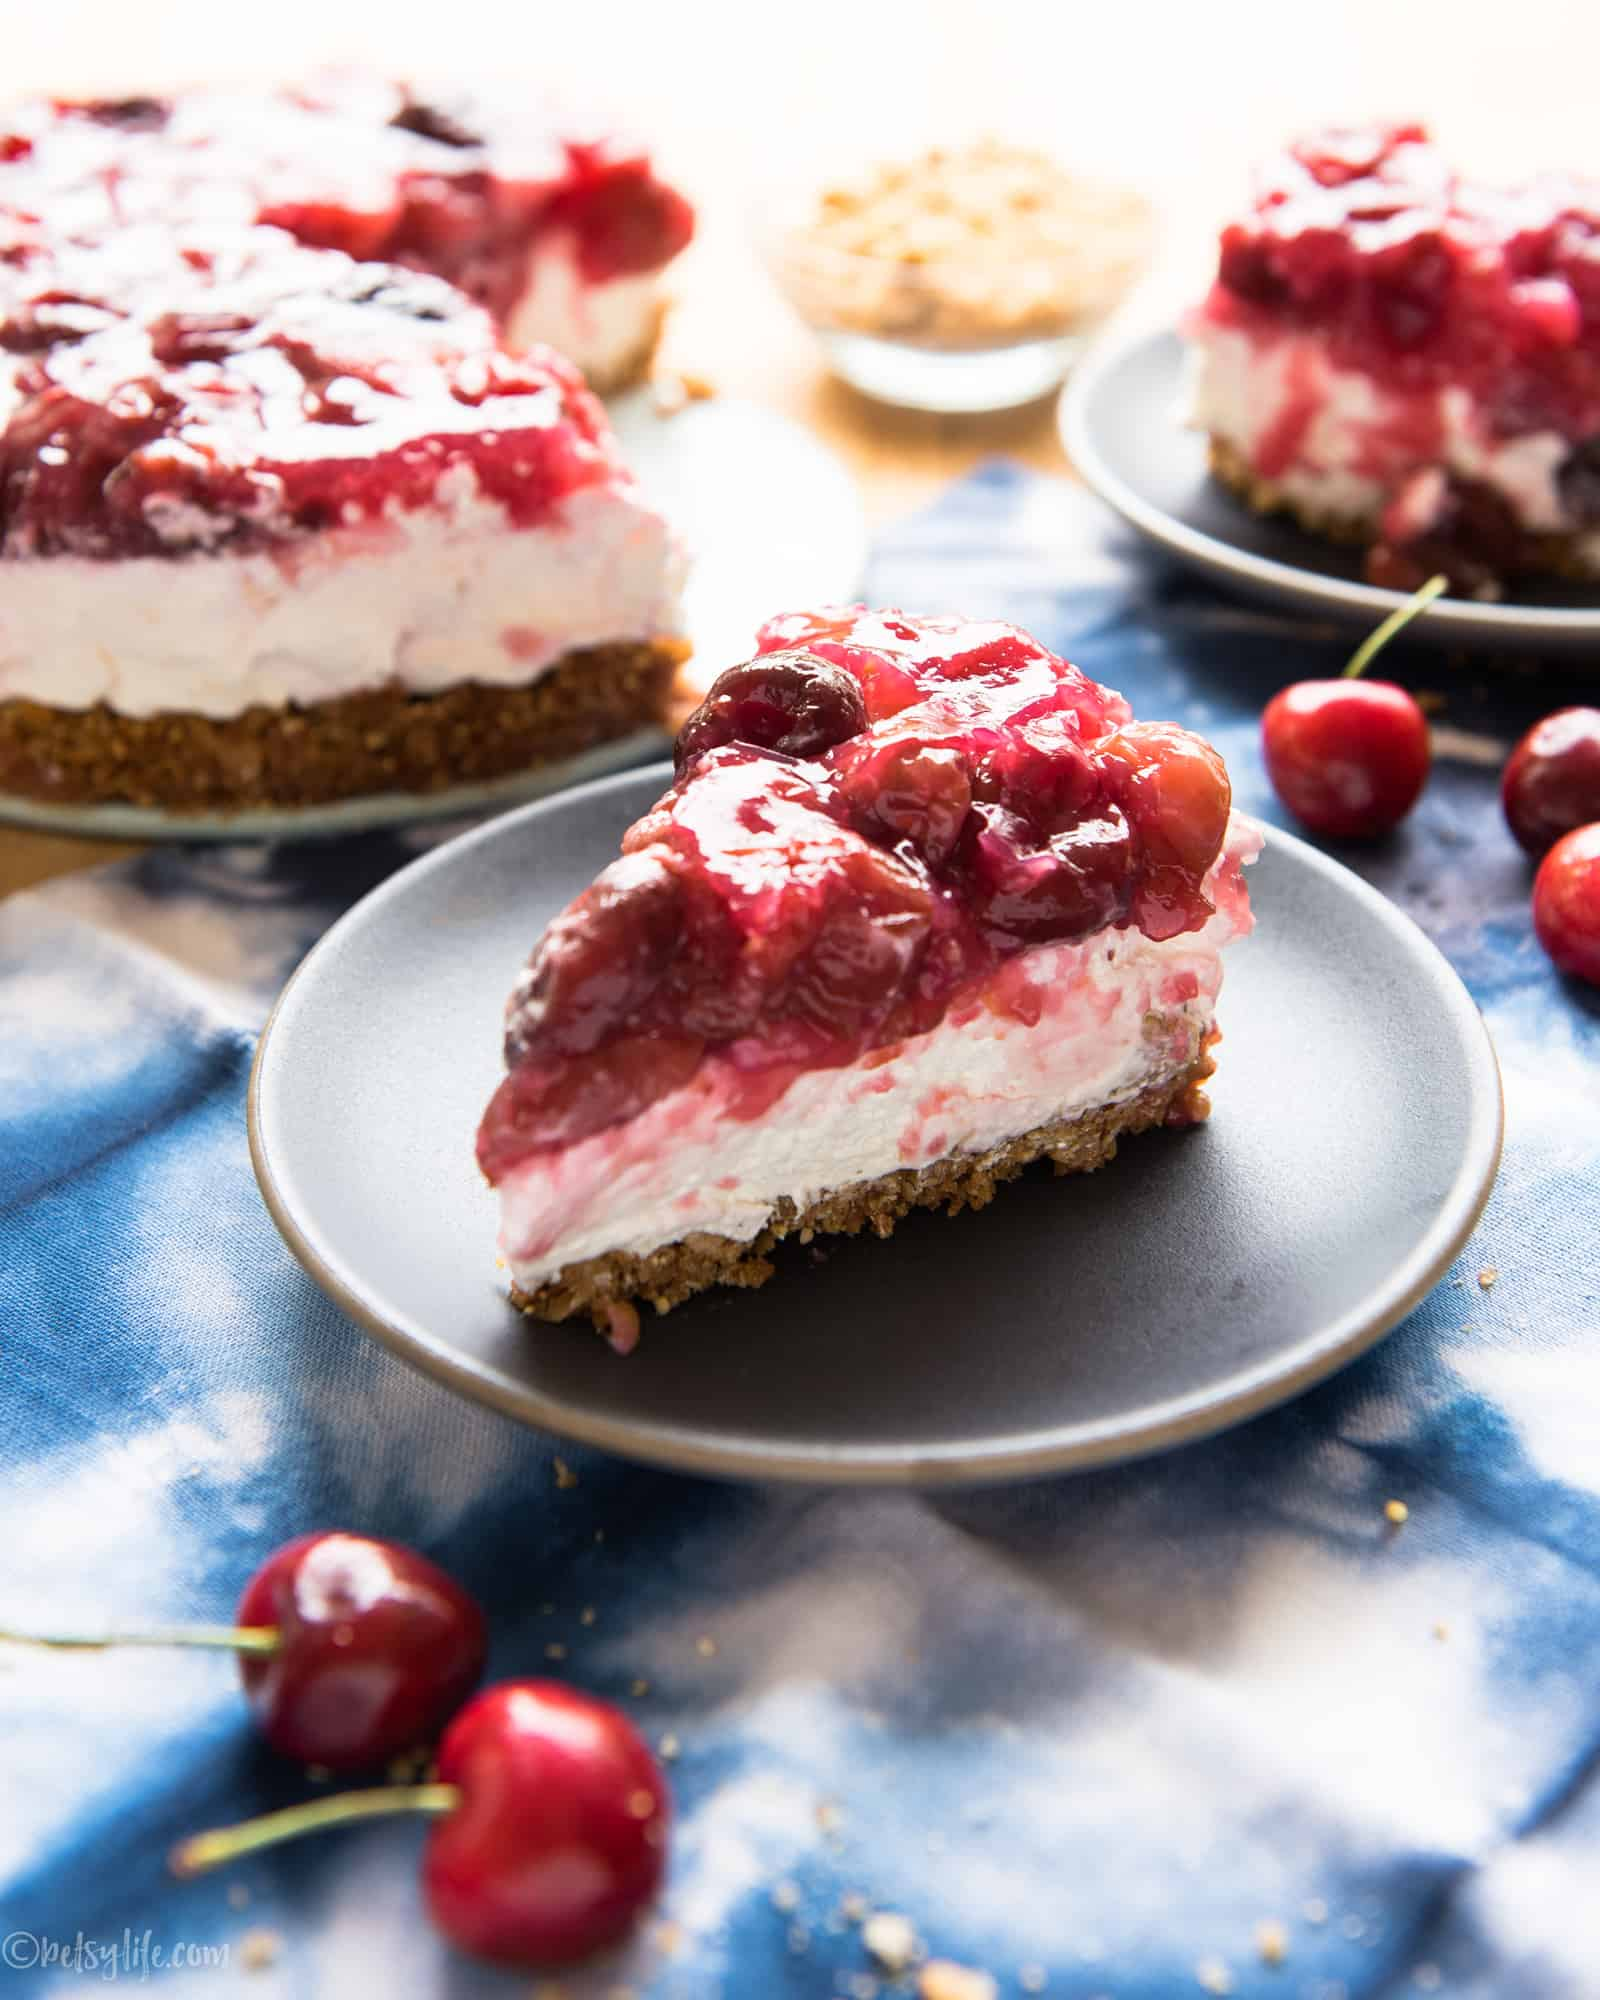 slice of cherry cream pie on a gray plate next to whole pie